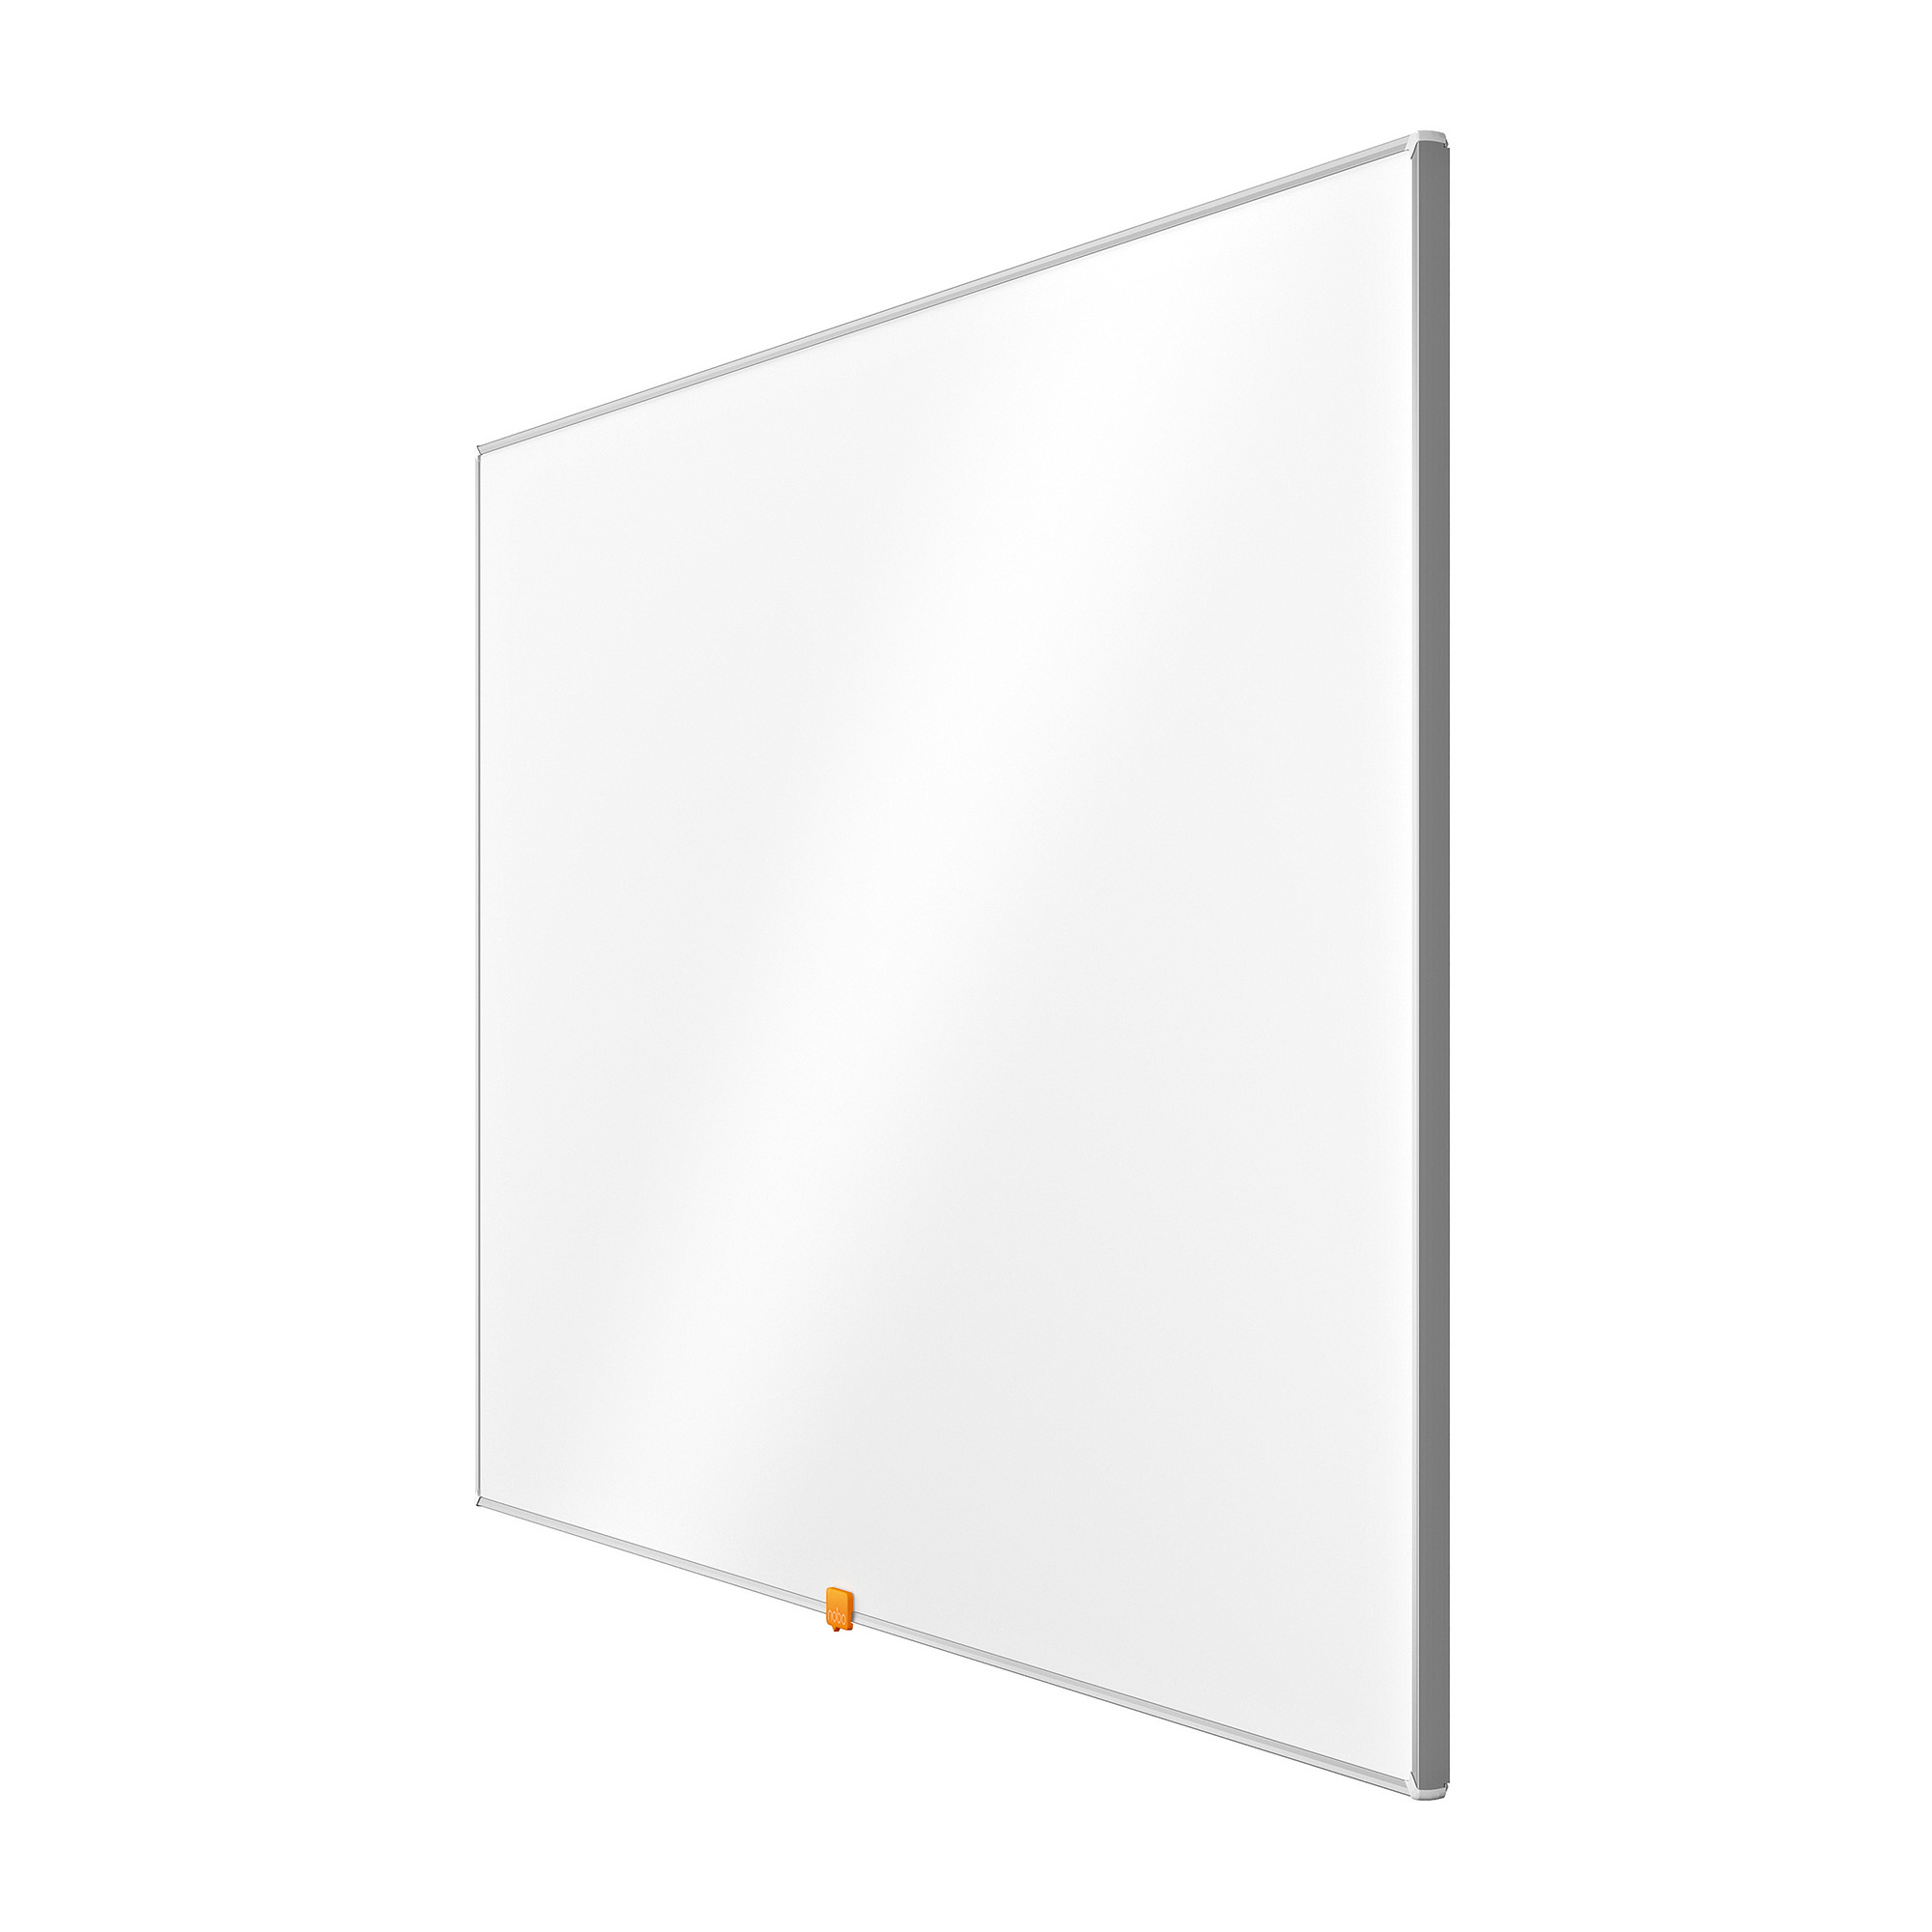 Nobo Widescreen 55 inch Whiteboard Melamine Surface Magnetic W1229xH698 White Ref 1905293